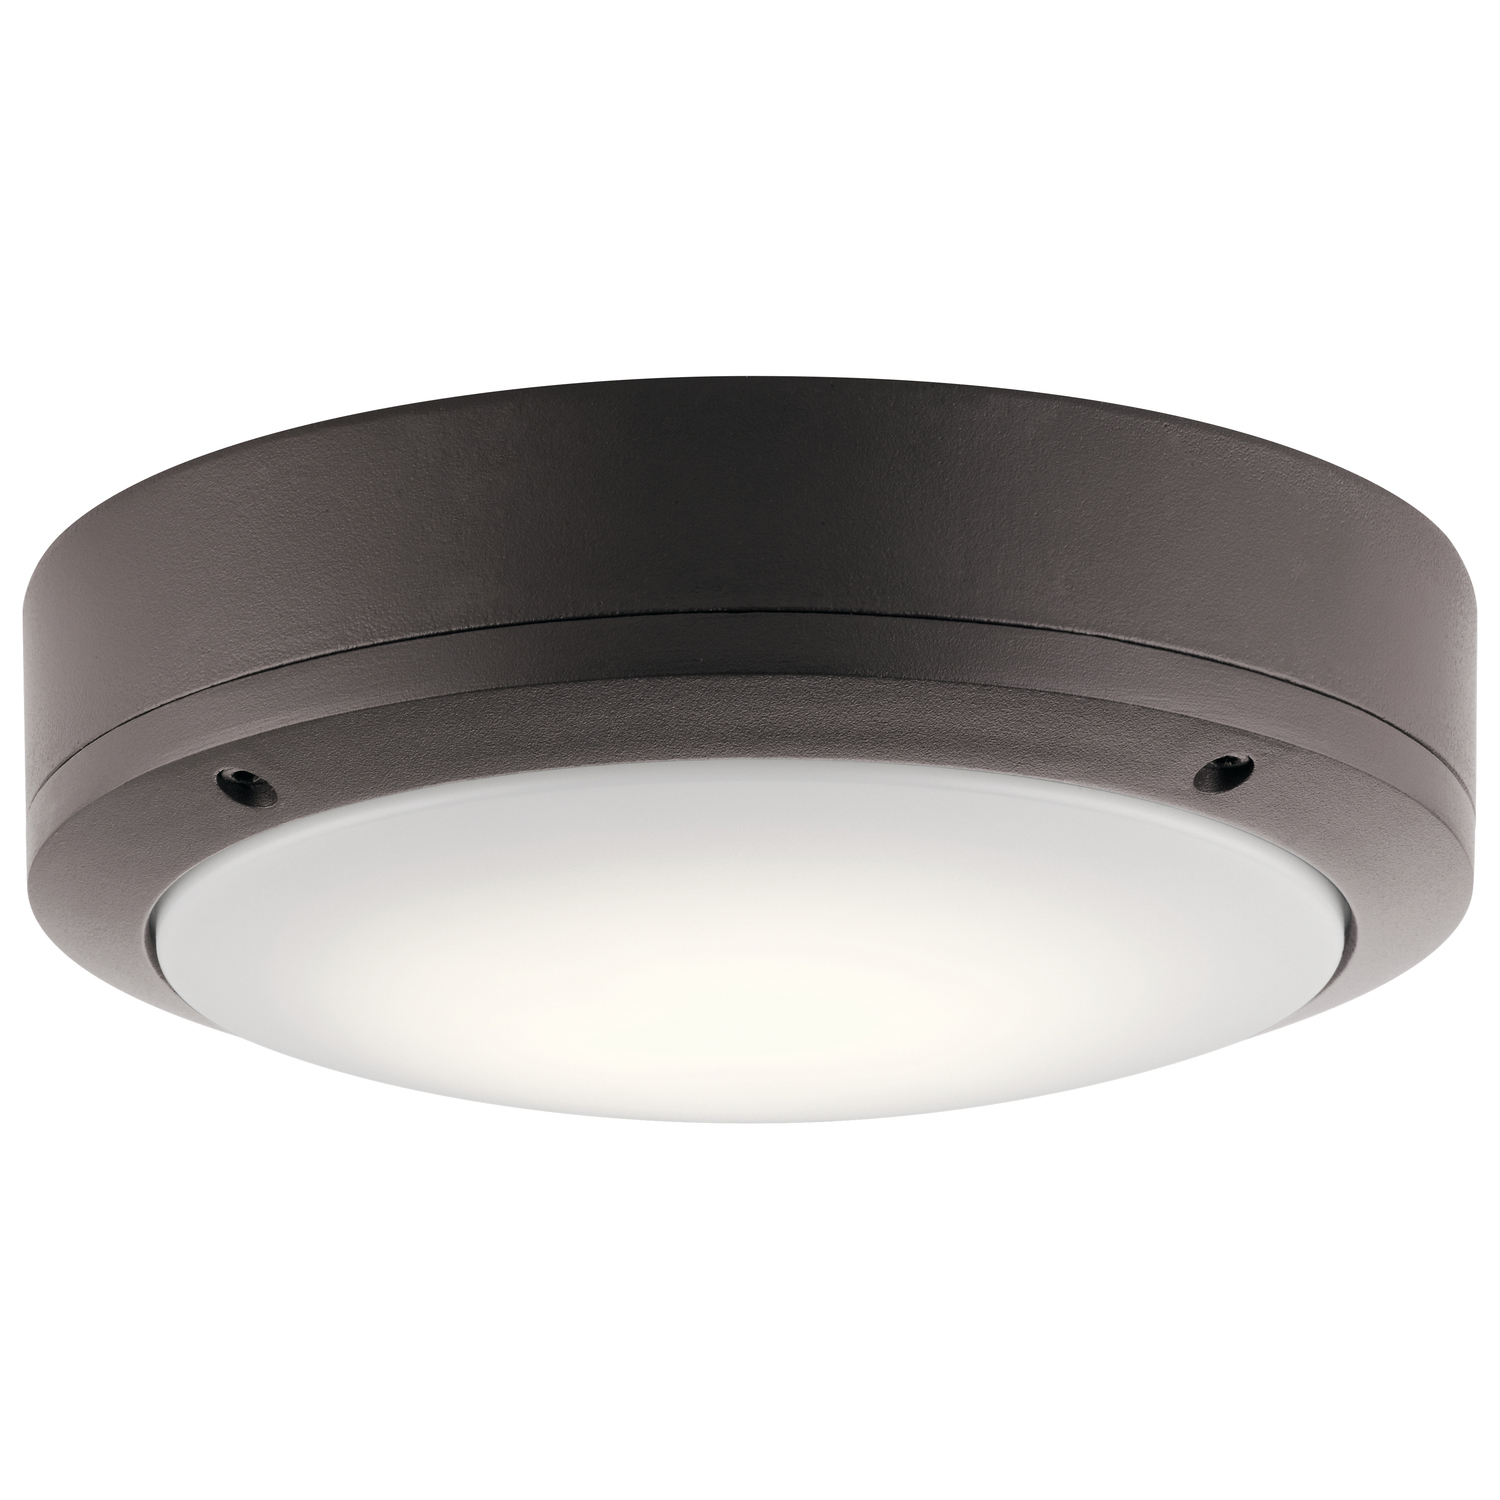 LED Outdoor Wall/Ceiling Mount